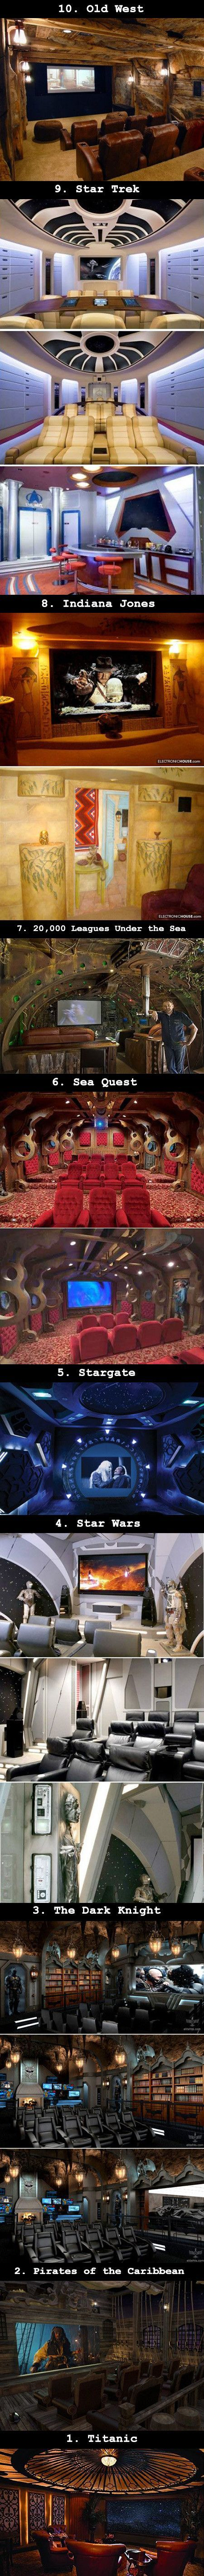 10 Mind-Blowing Home Theaters!! Can I please have one of these!!! Please please please!!! Can I start making payments on it now!!!